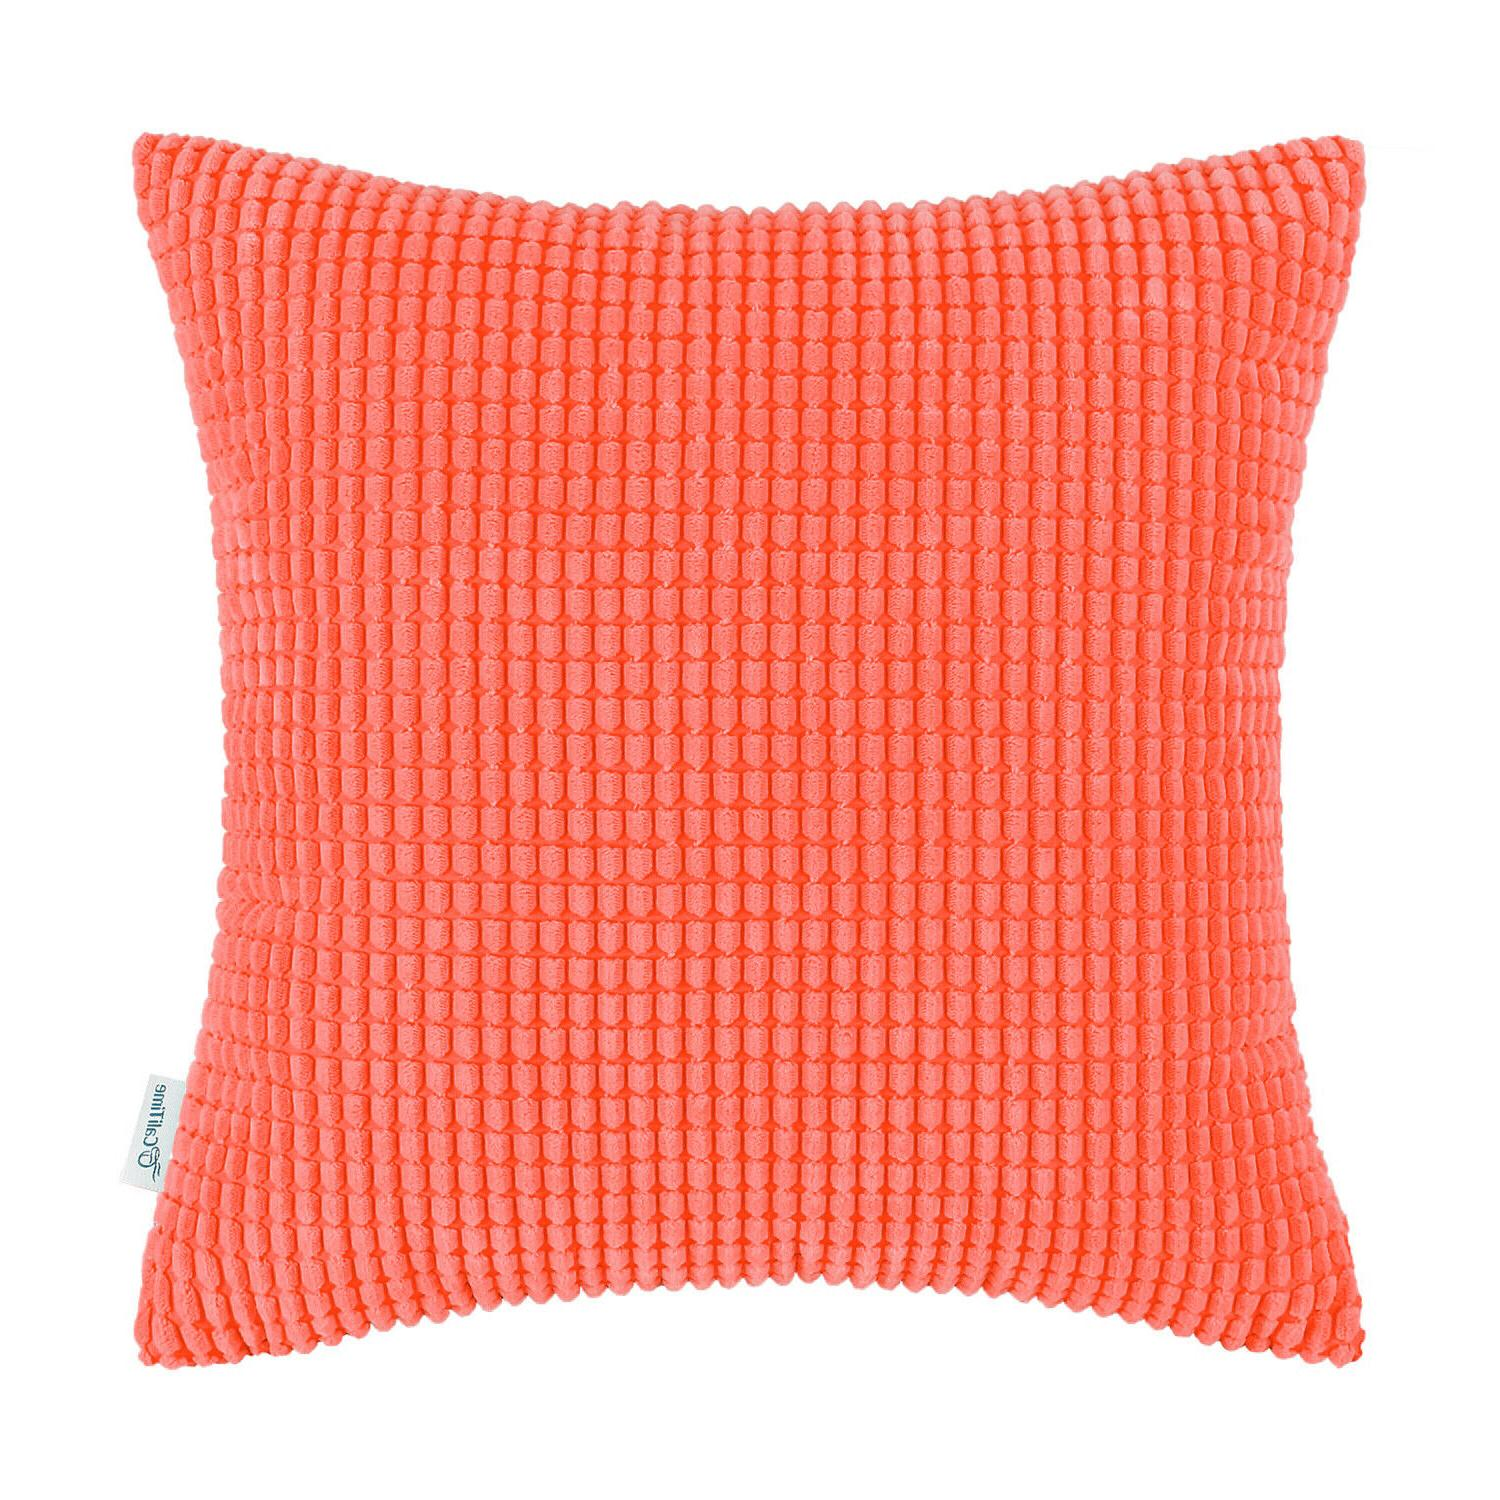 cushion covers pillow cases solid soft corduroy